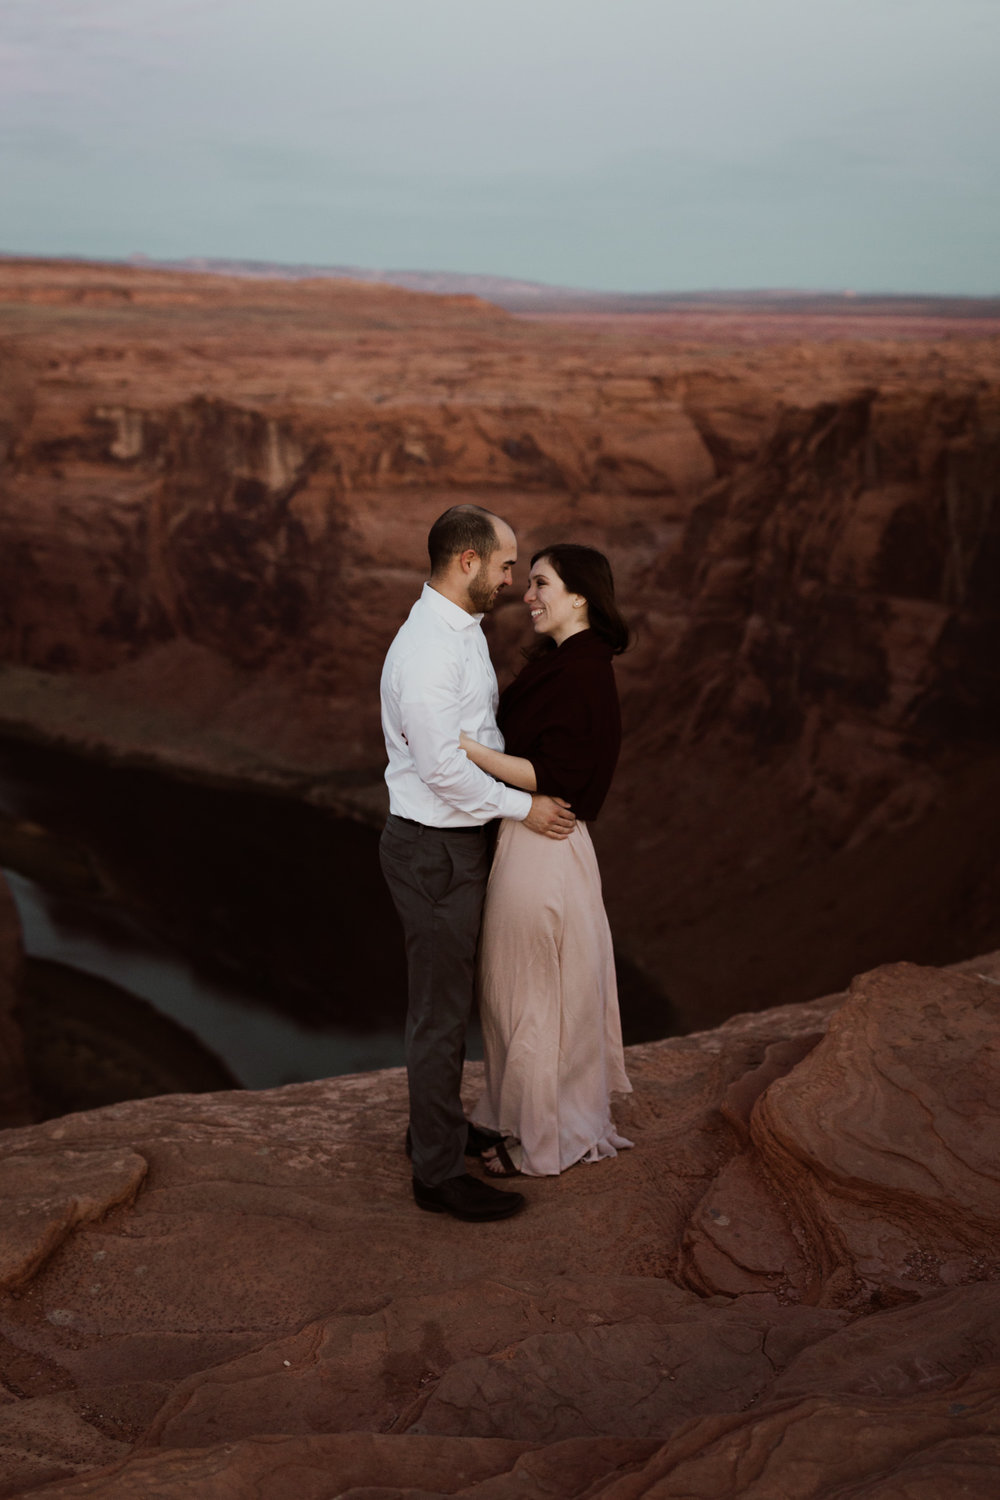 glen-canyon-arizona-adventure-engagements-3.jpg